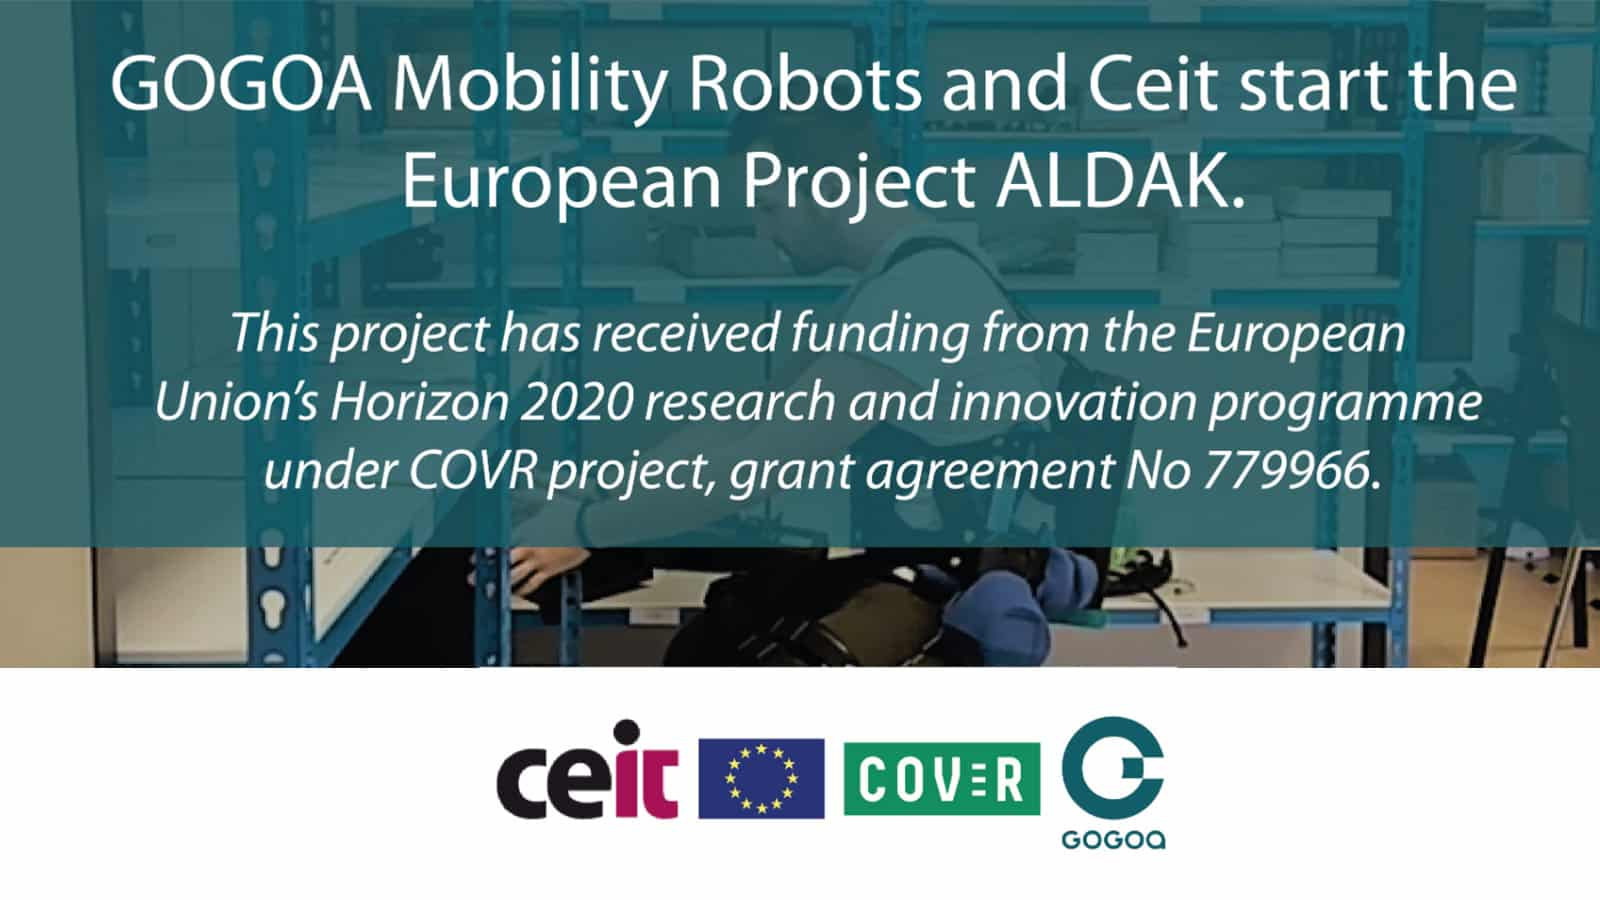 ATEX Certification Of Active Exoskeletons- GOGOA and CEIT Start the European ALDAK Project Under COVR